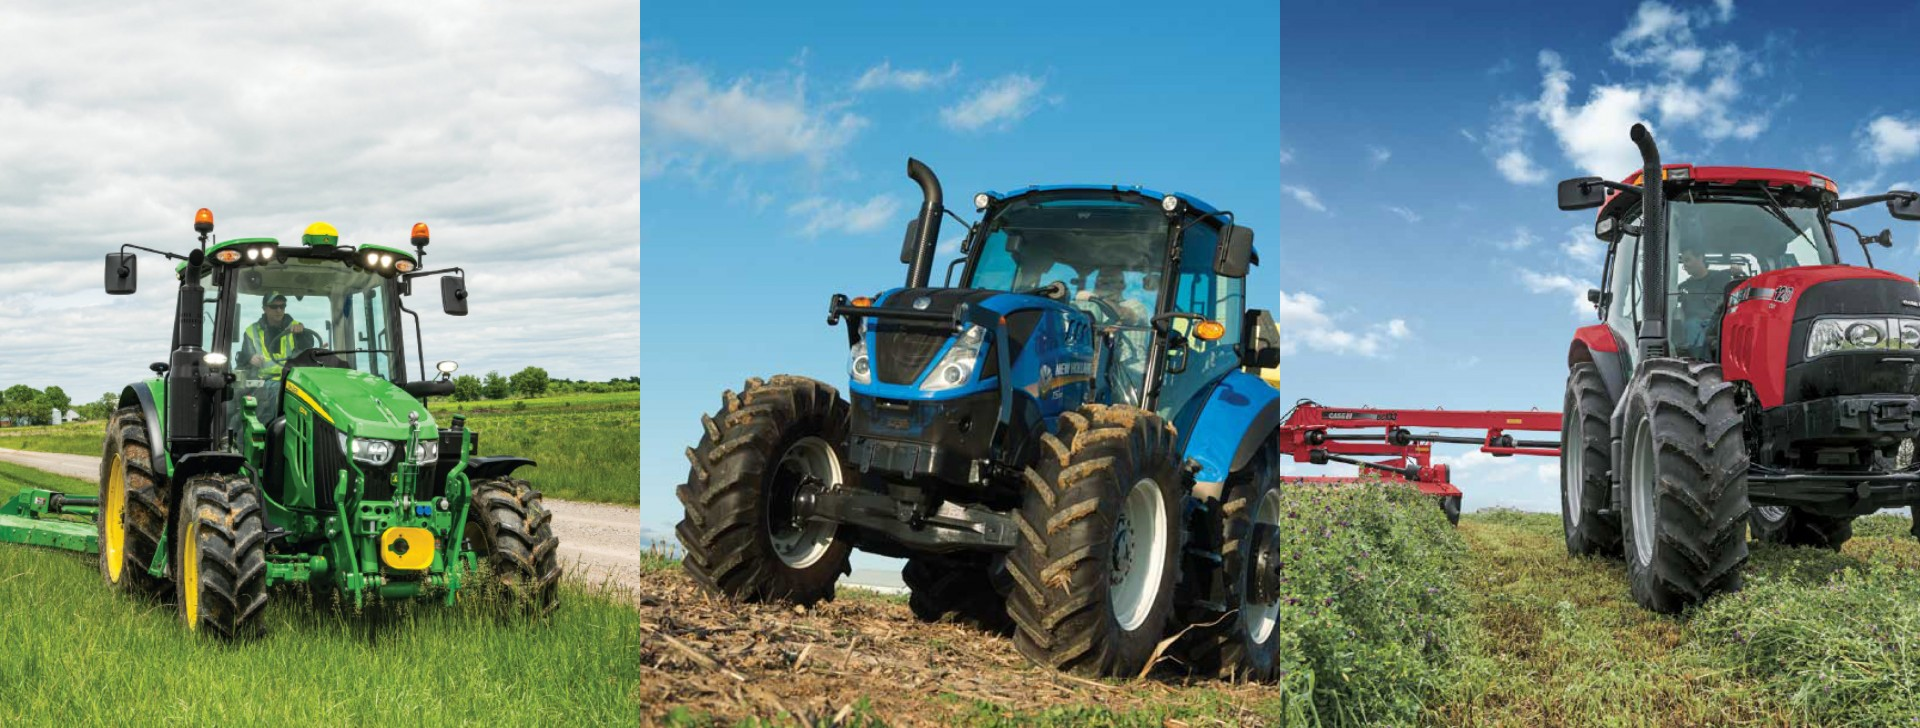 Sourcewell awards contracts in the 'Agriculture Tractors and Equipment' category through solicitation #110719. Sourcewell contracts are solicited across North America and competitively awarded on behalf of Sourcewell current and potential government and education member agencies.